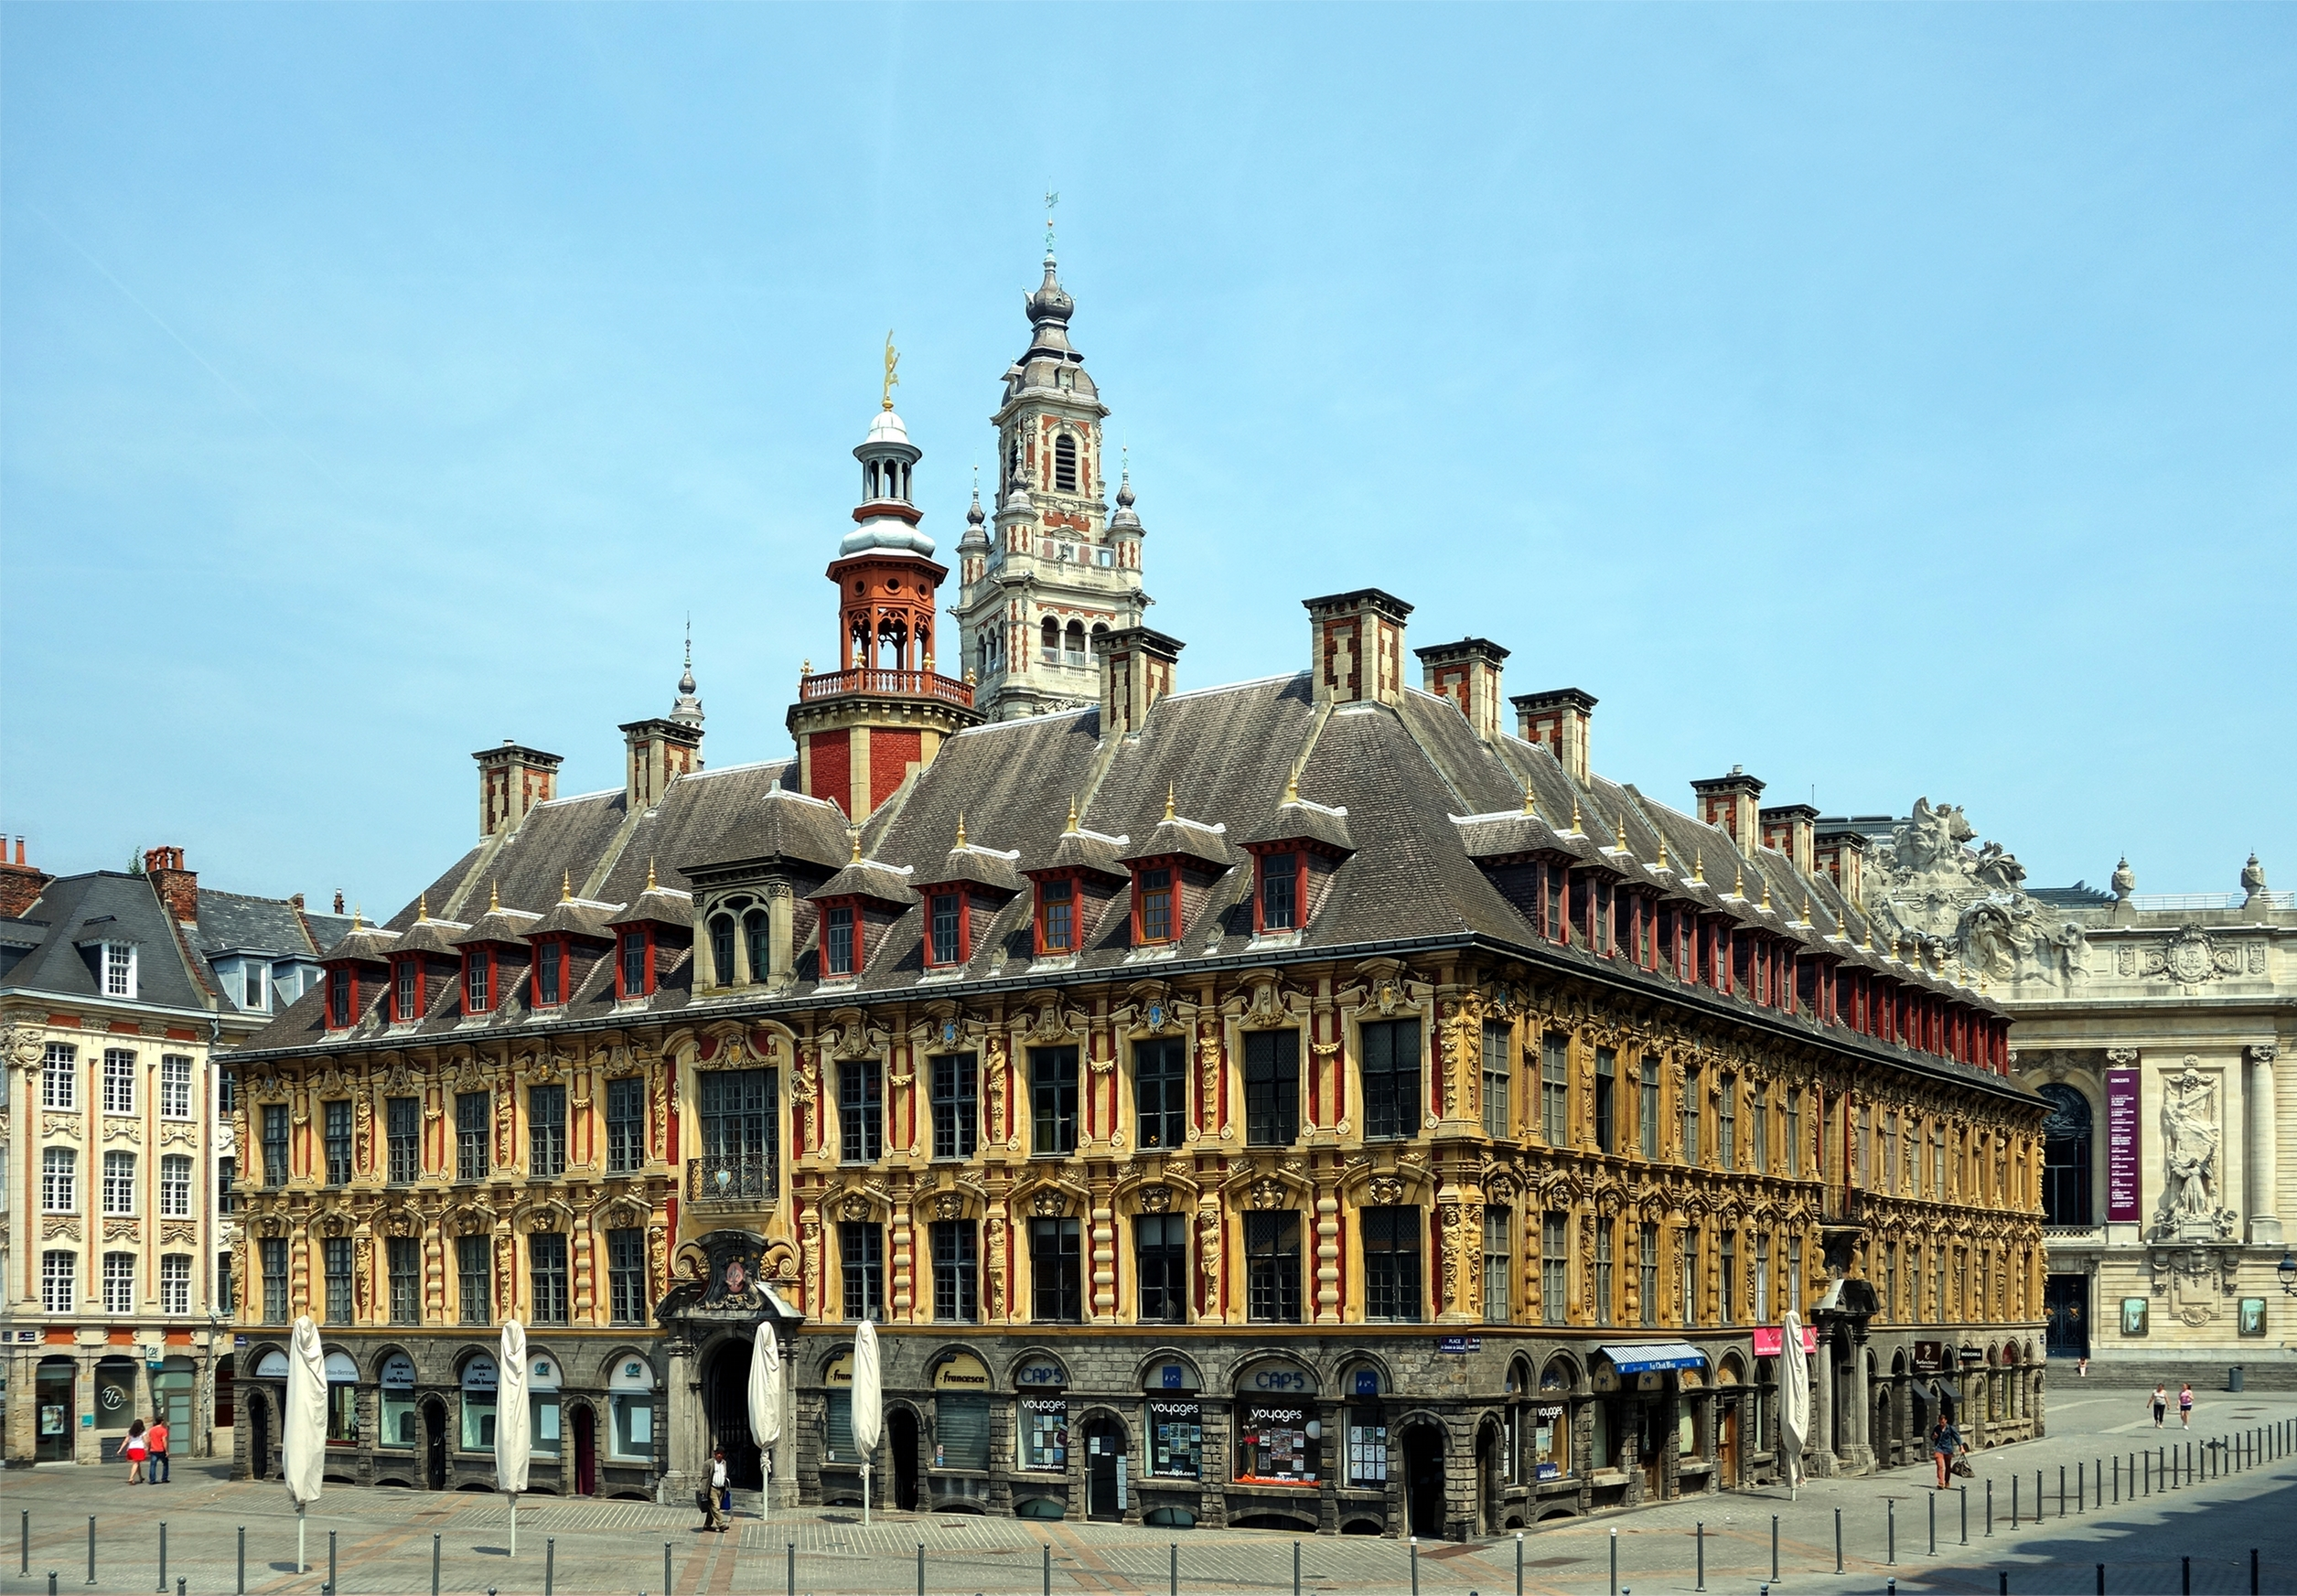 https://upload.wikimedia.org/wikipedia/commons/5/56/Lille_vieille_bourse_profil.JPG